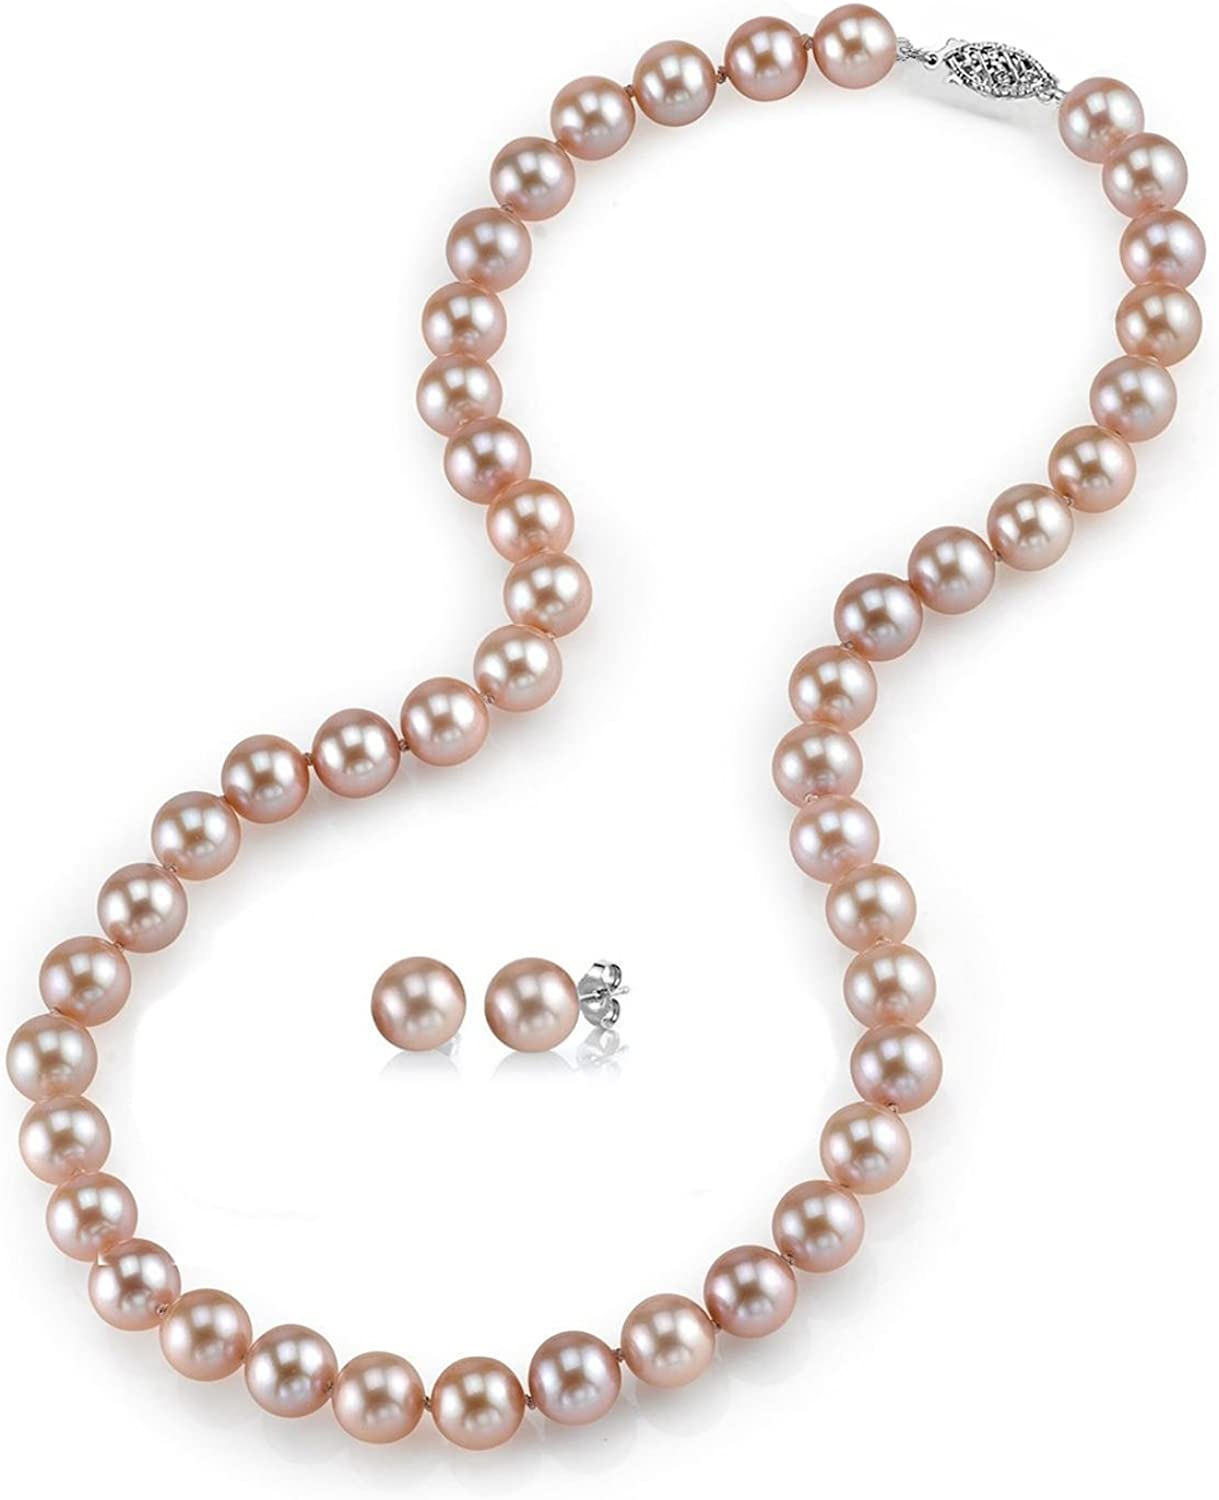 THE PEARL SOURCE 14K Gold 7-8mm Round Pink Freshwater Cultured Pearl Necklace & Earrings Set in 18